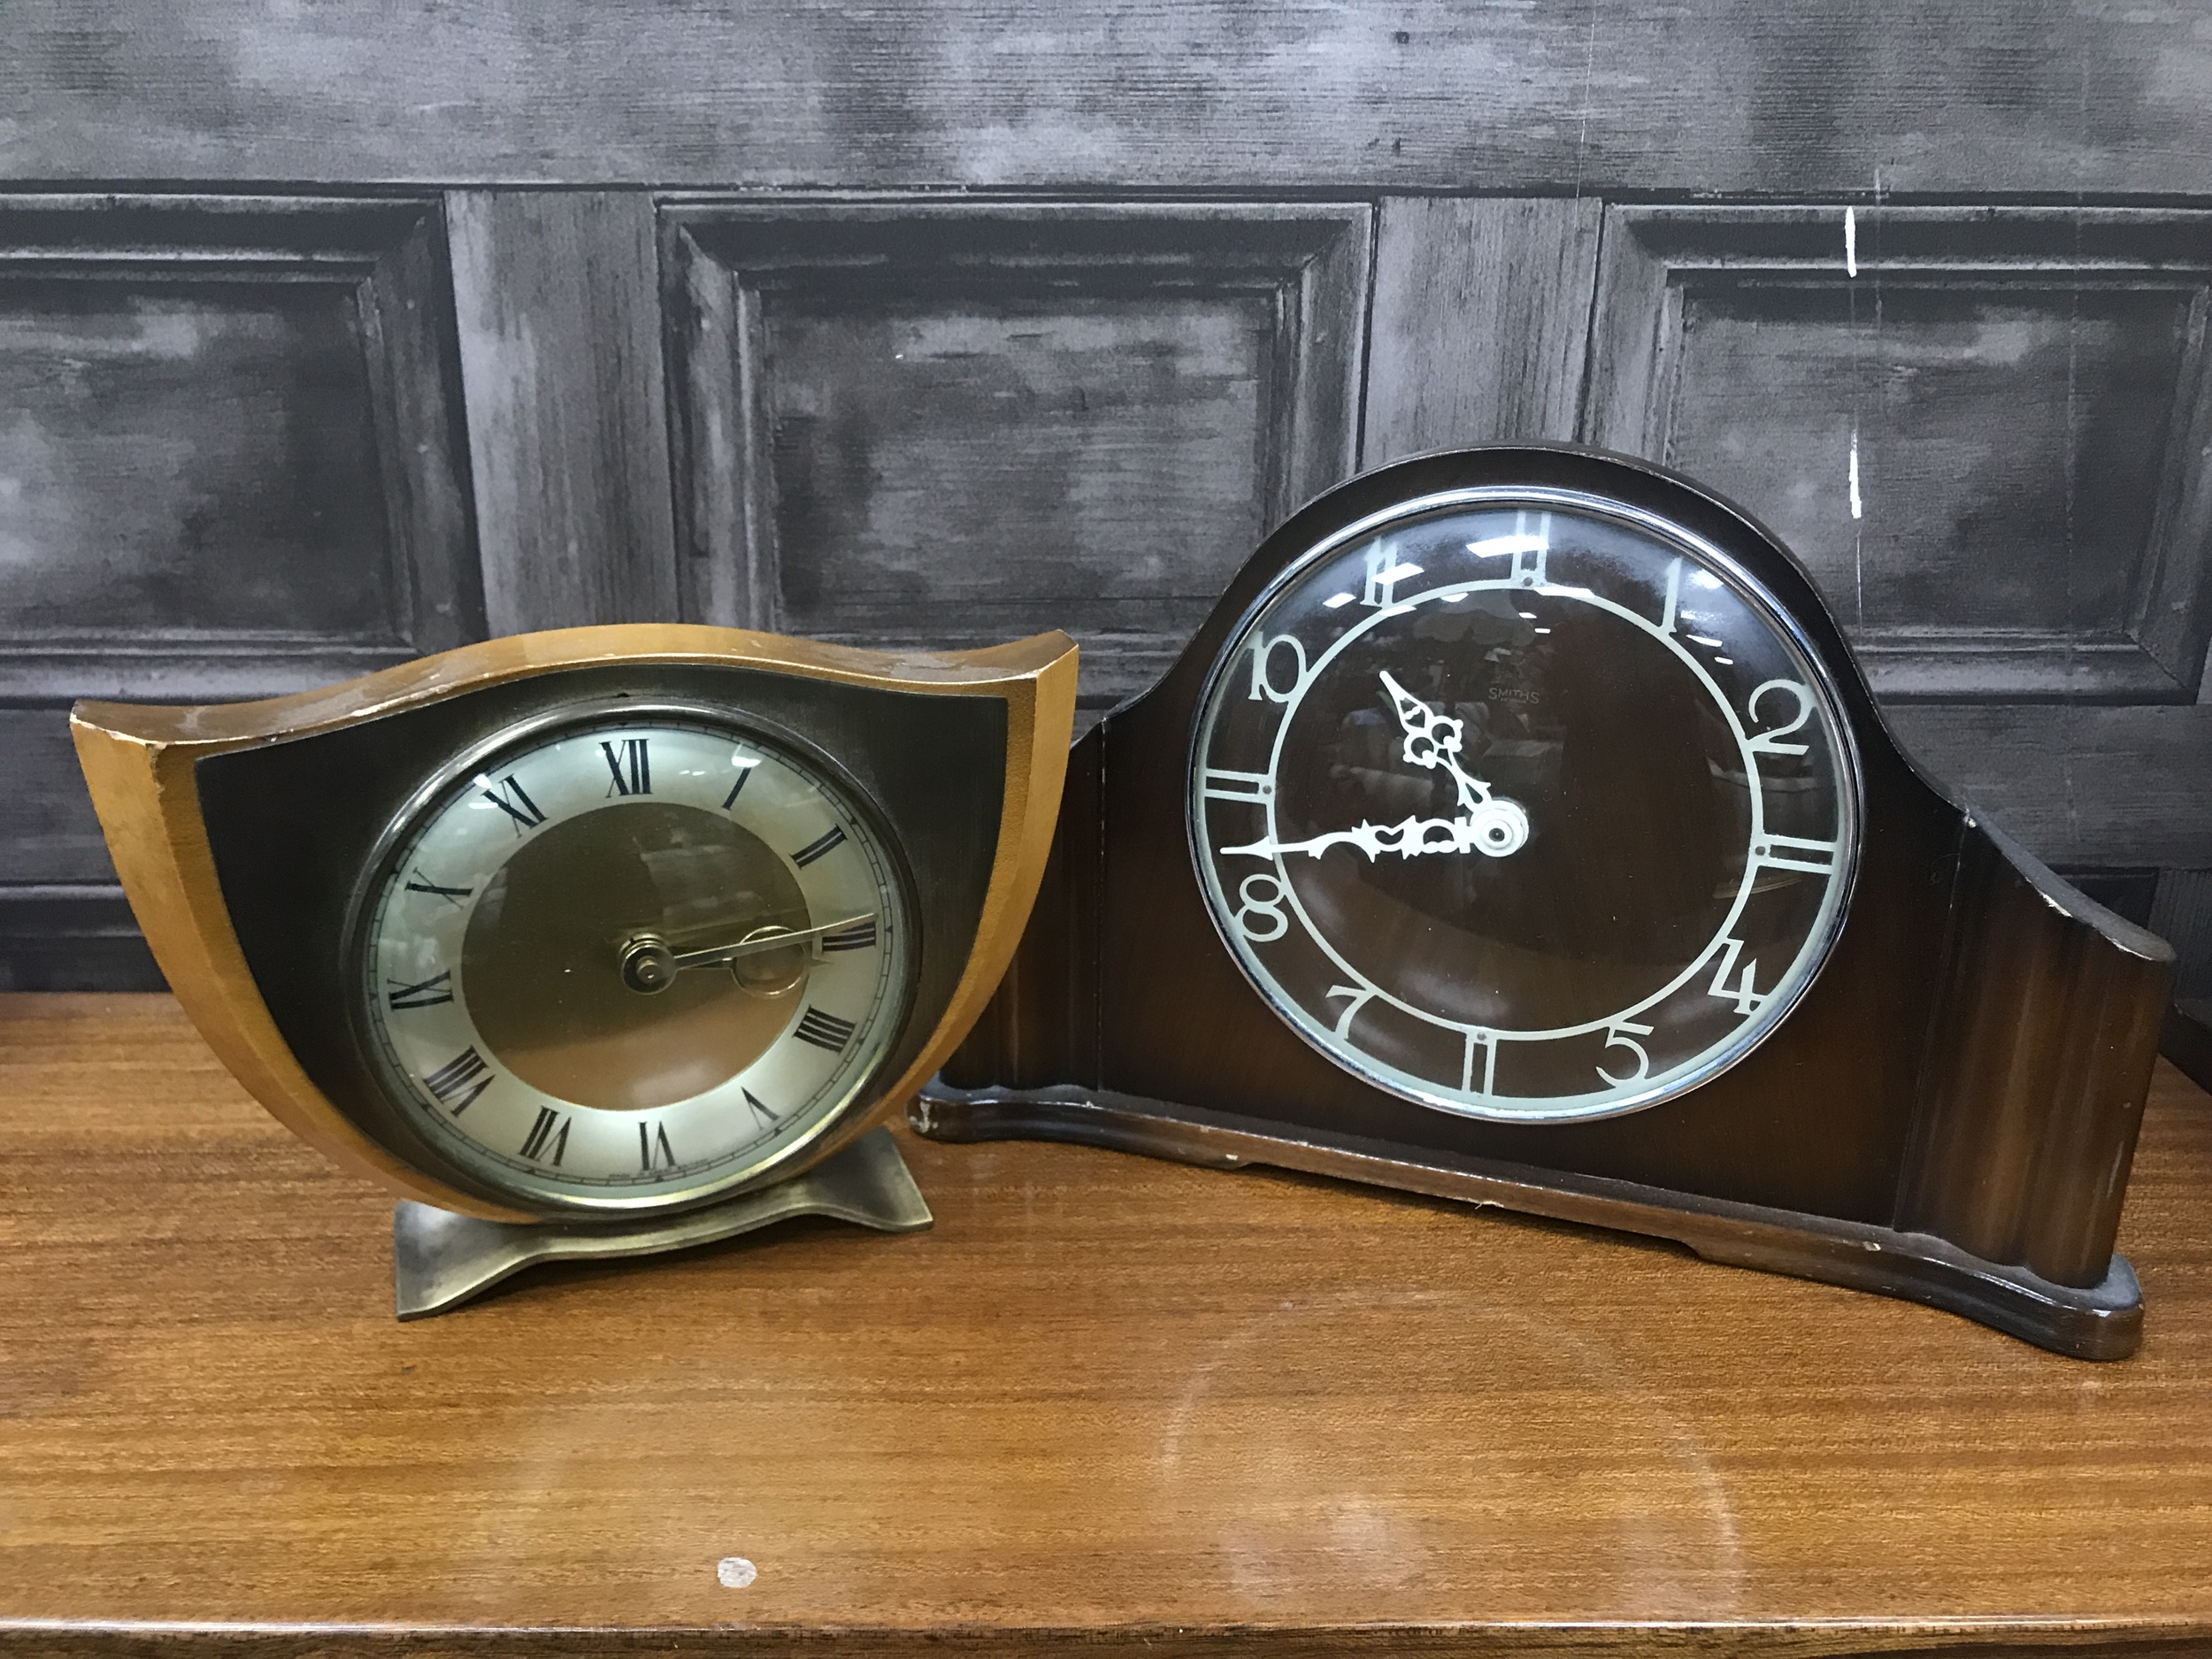 AN OAK ART DECO STYLE MANTEL CLOCK AND THREE OTHER CLOCKS - Image 2 of 2